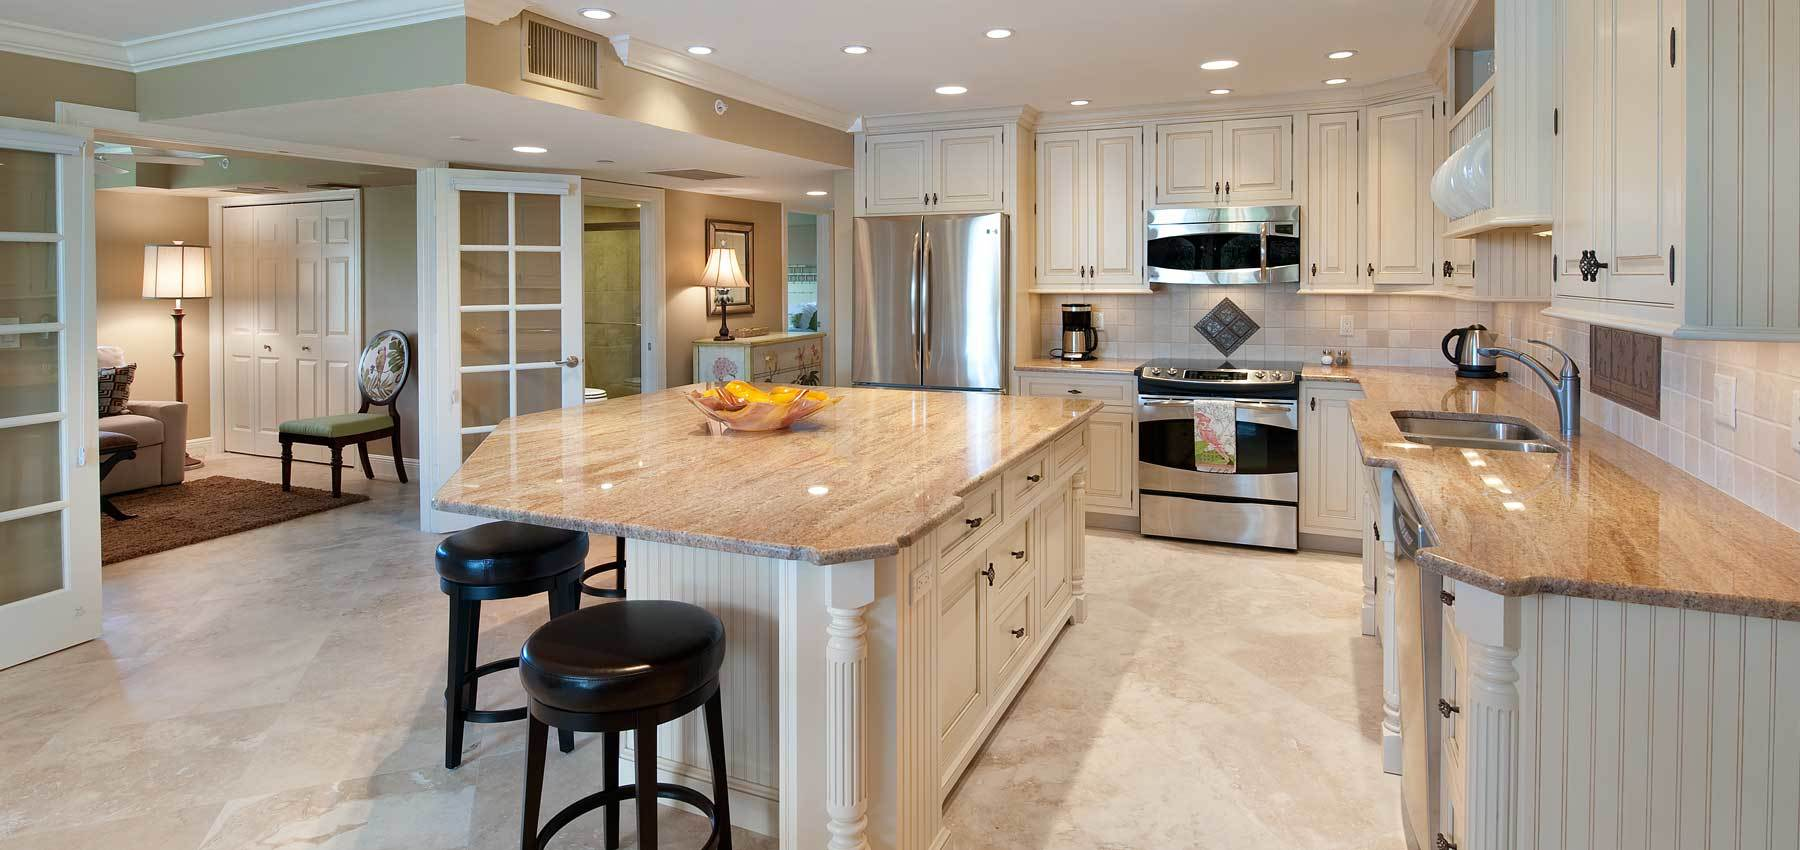 Kitchen remodeling kgt remodeling for Kitchen remodel designs pictures